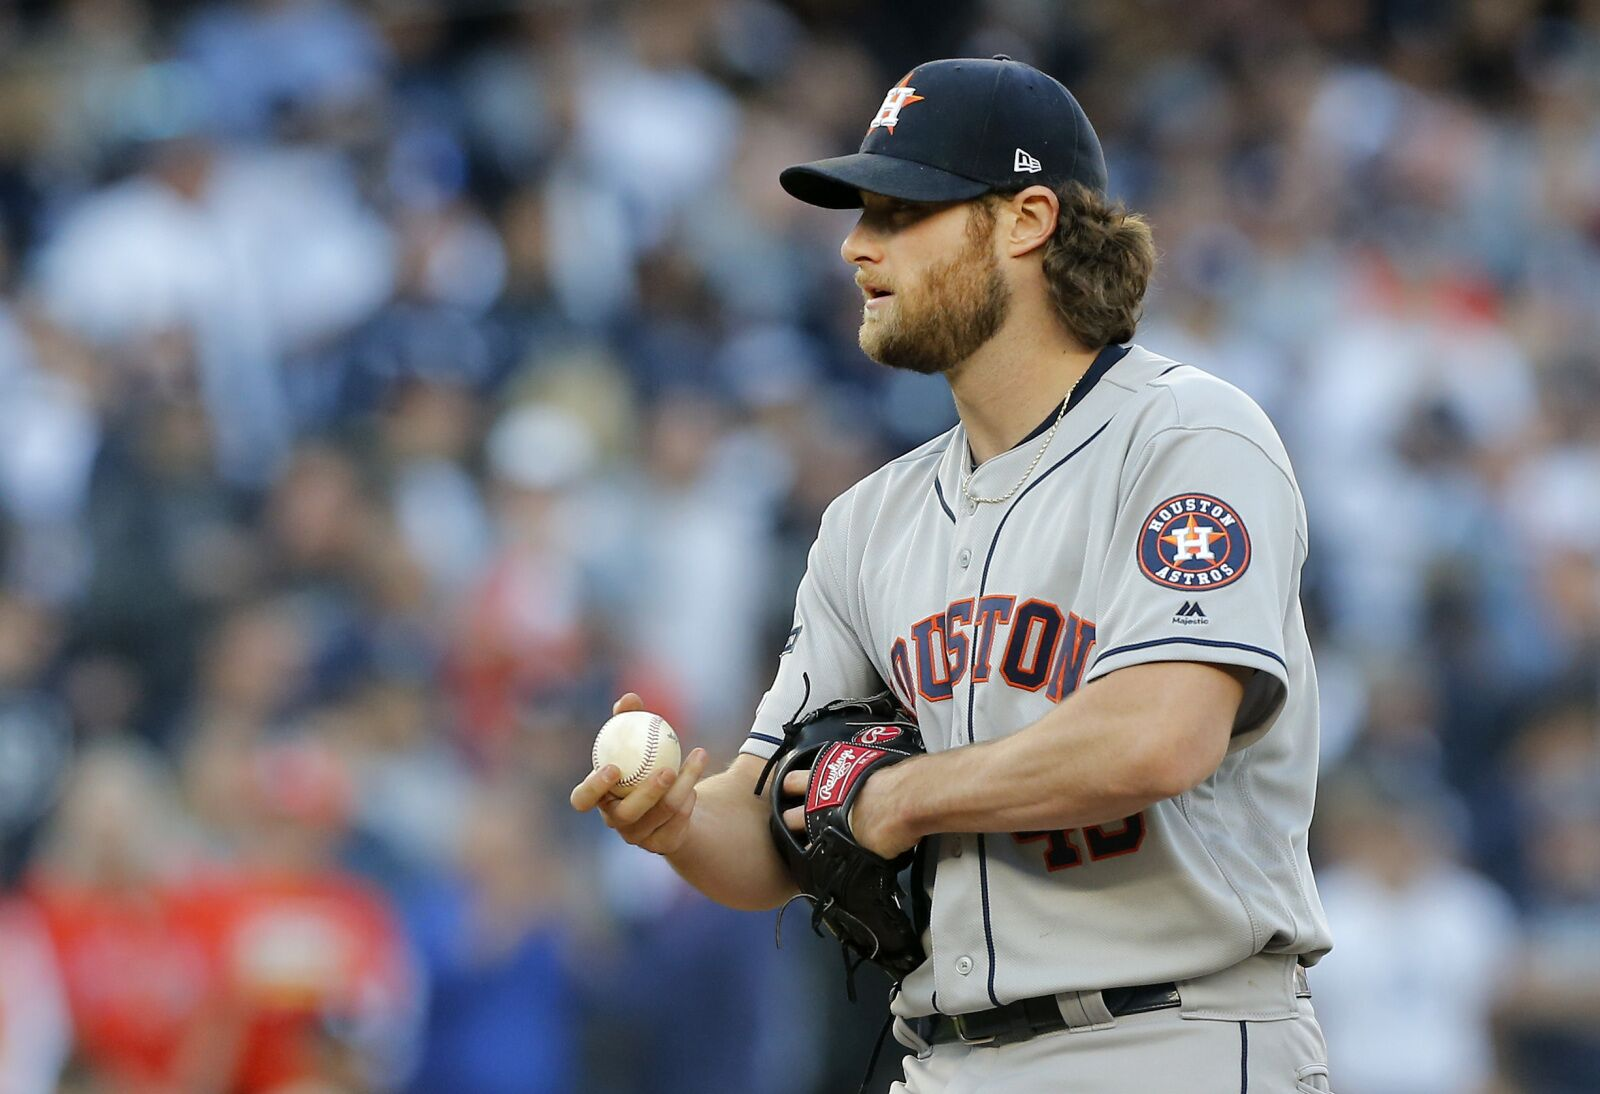 Gerrit Cole rumors: Cole may have already decided on Yankees